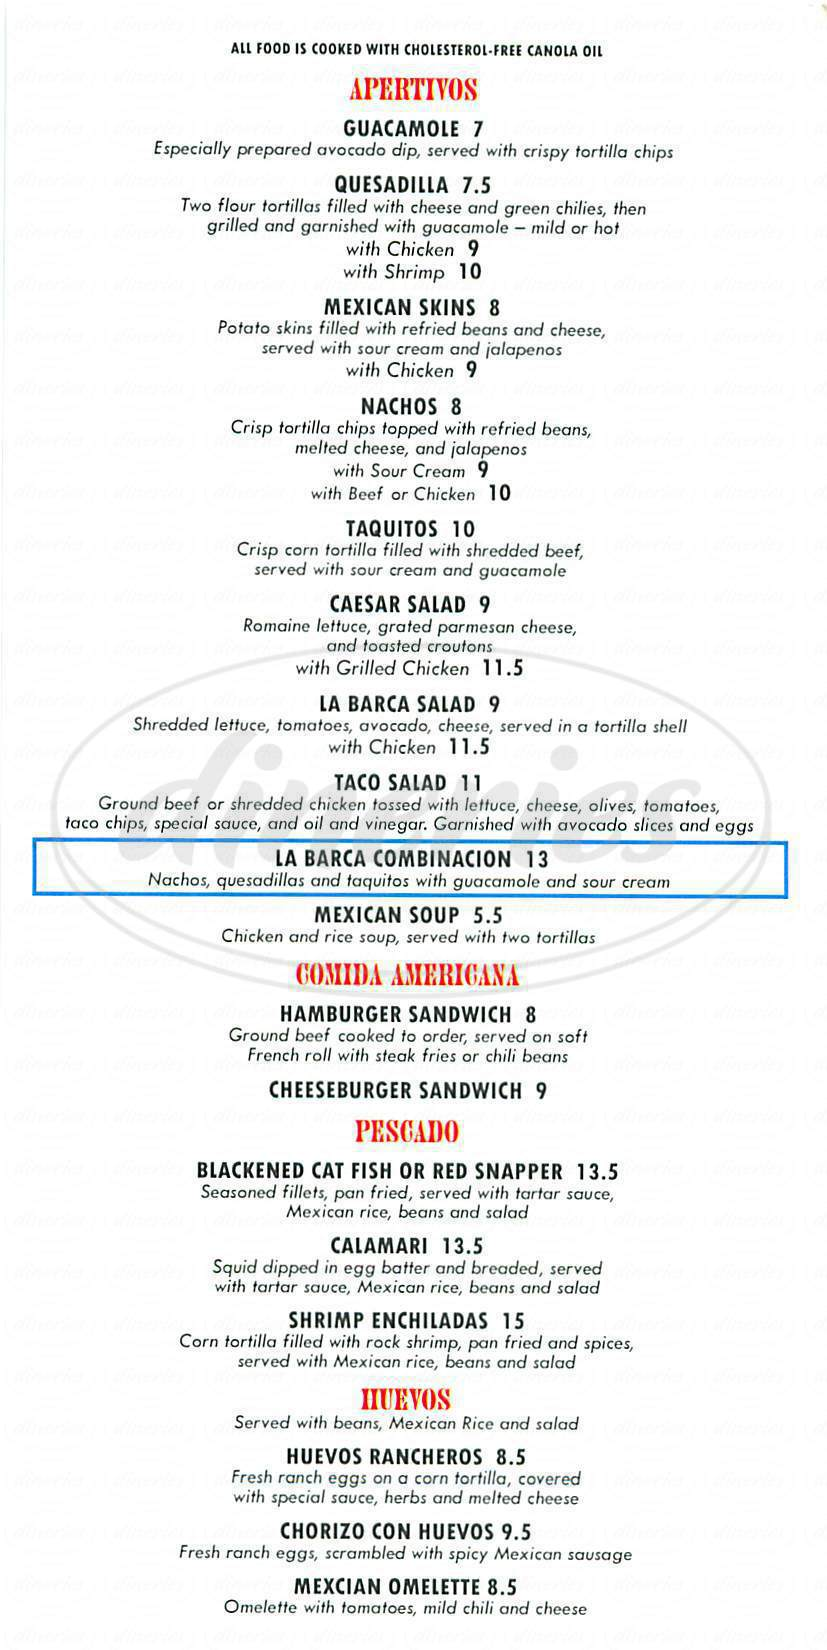 menu for La Barca